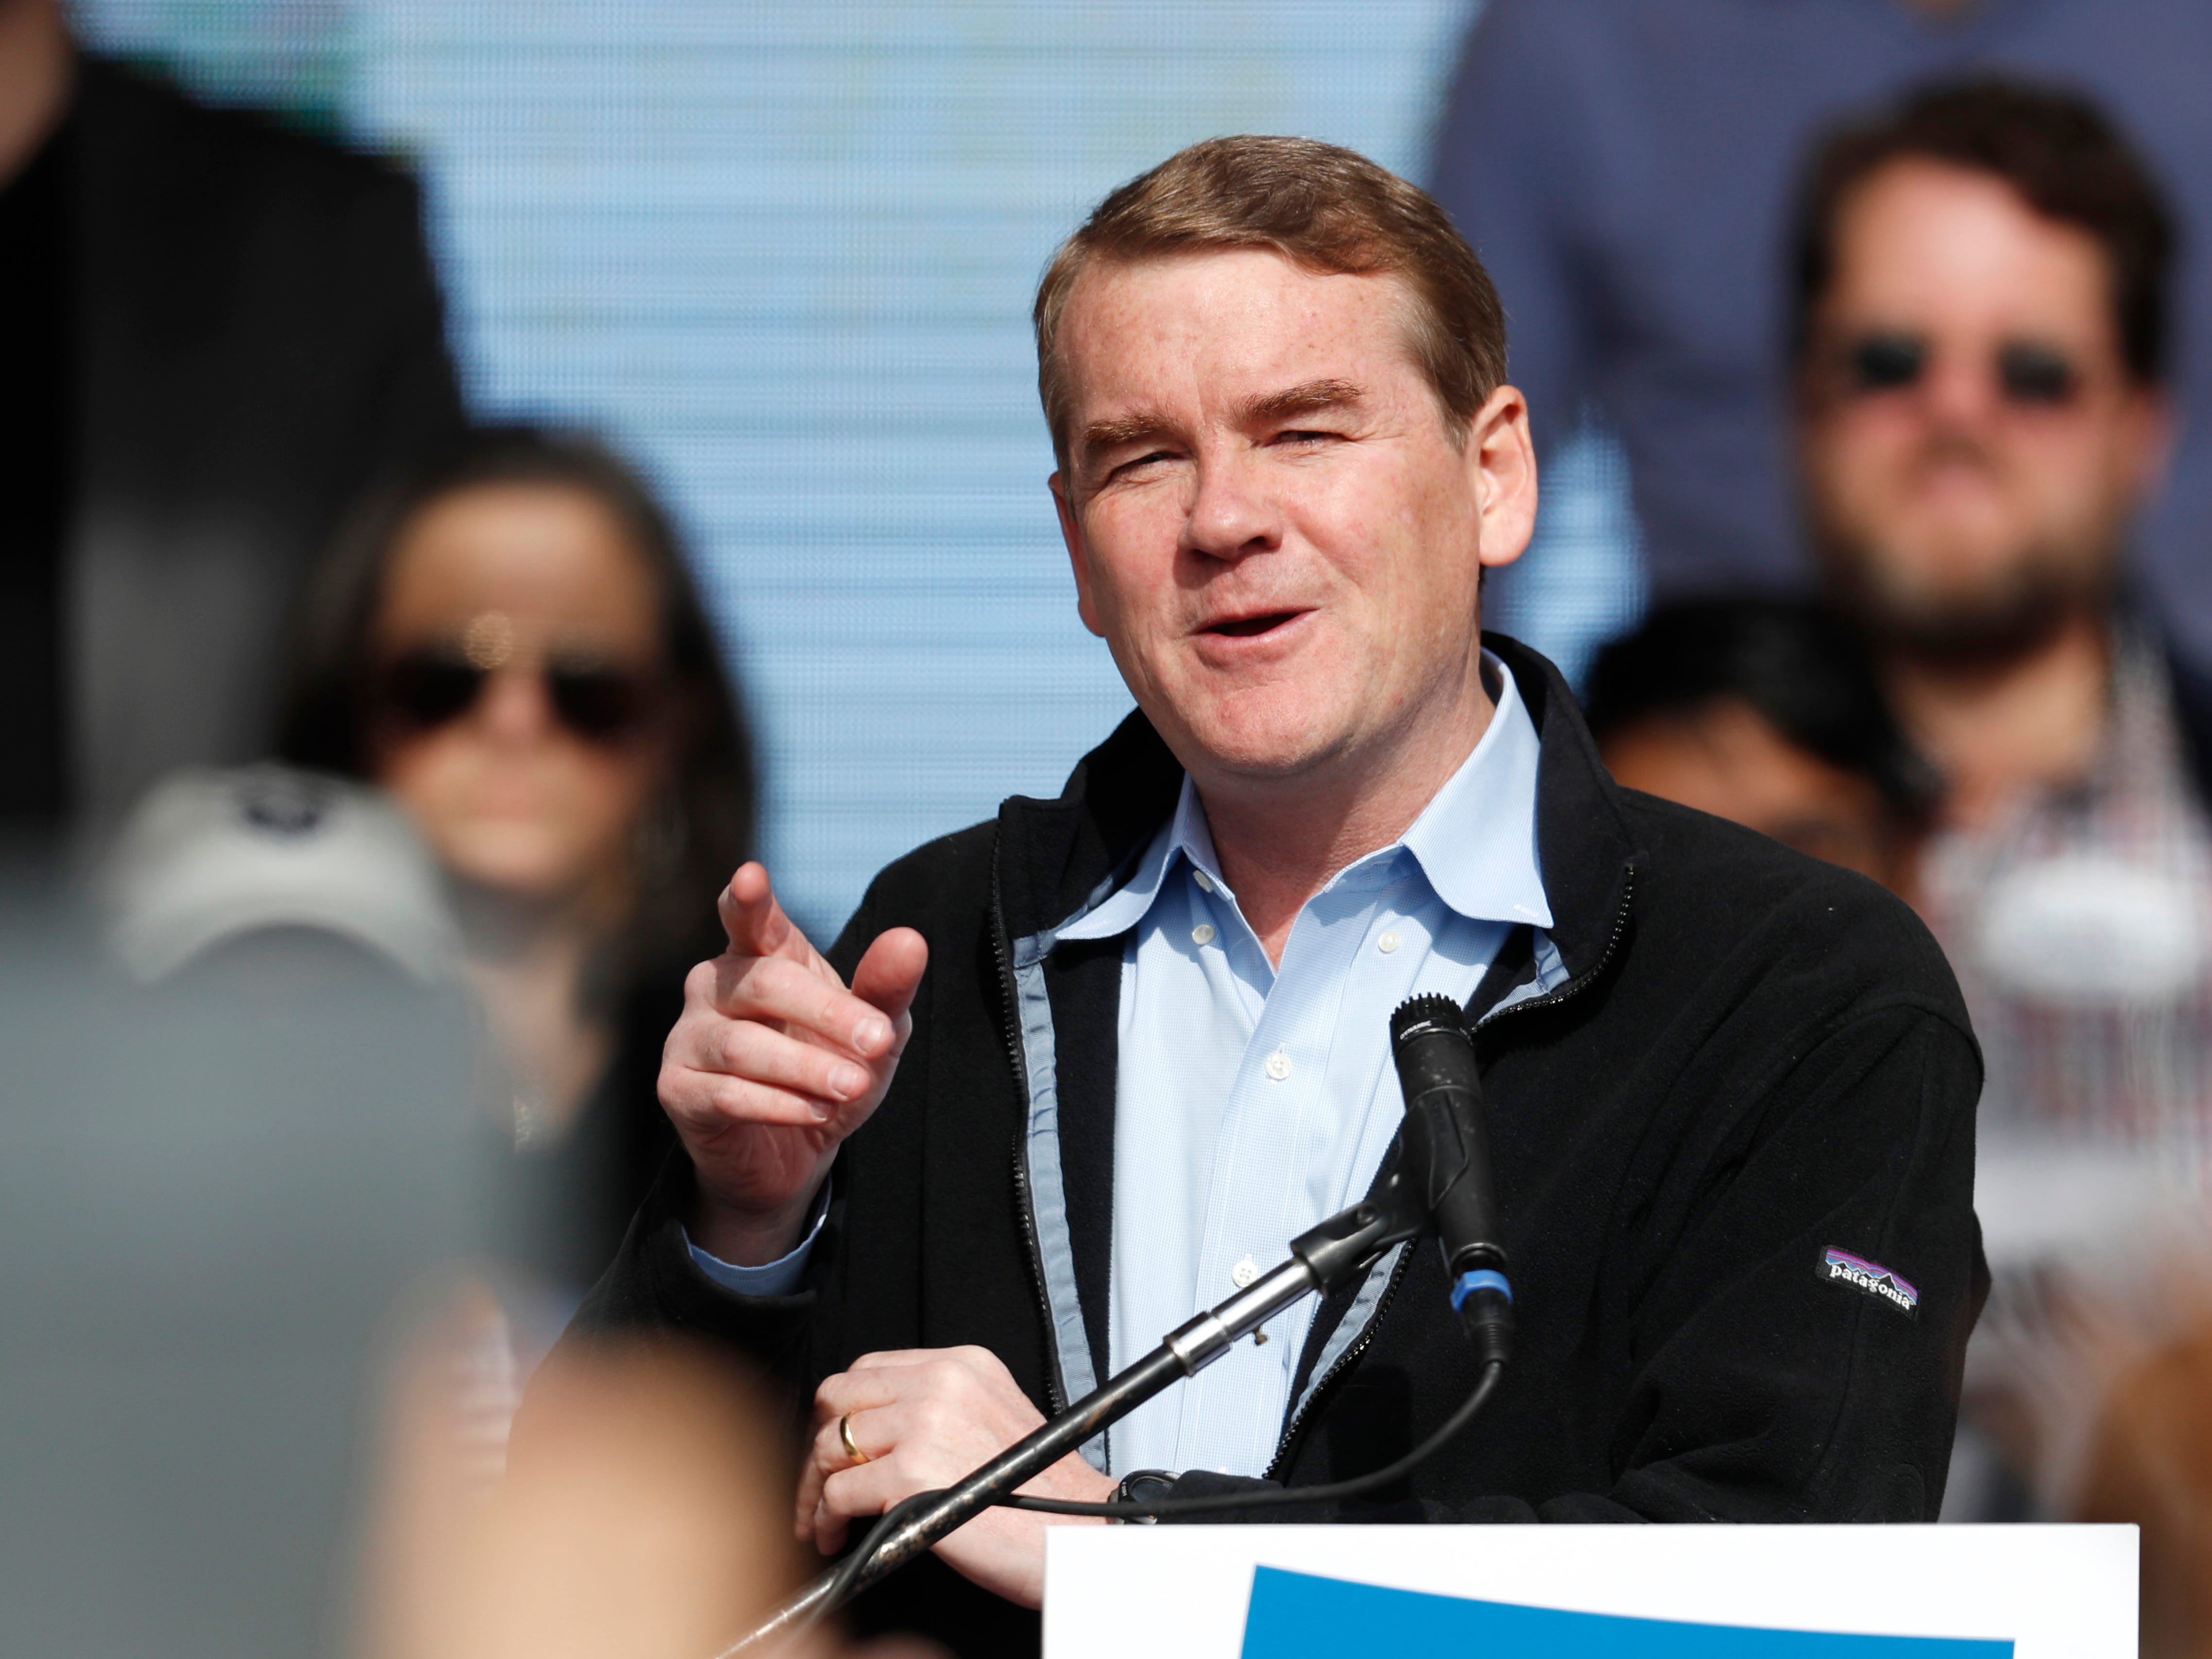 "FILE - In this Oct. 24, 2018, file photo, U.S. Senator Michael Bennet, D-Colo., speaks before Senator Bernie Sanders during a rally with young voters on the campus of the University of Colorado in Boulder, Colo. Bennet says he is seeking the Democratic nomination for president in 2020. The three-term senator made the announcement Thursday on ""CBS This Morning."" He is now among more than 20 Democrats seeking the party's presidential nomination. (AP Photo/David Zalubowski, File) ORG XMIT: BKWS303"